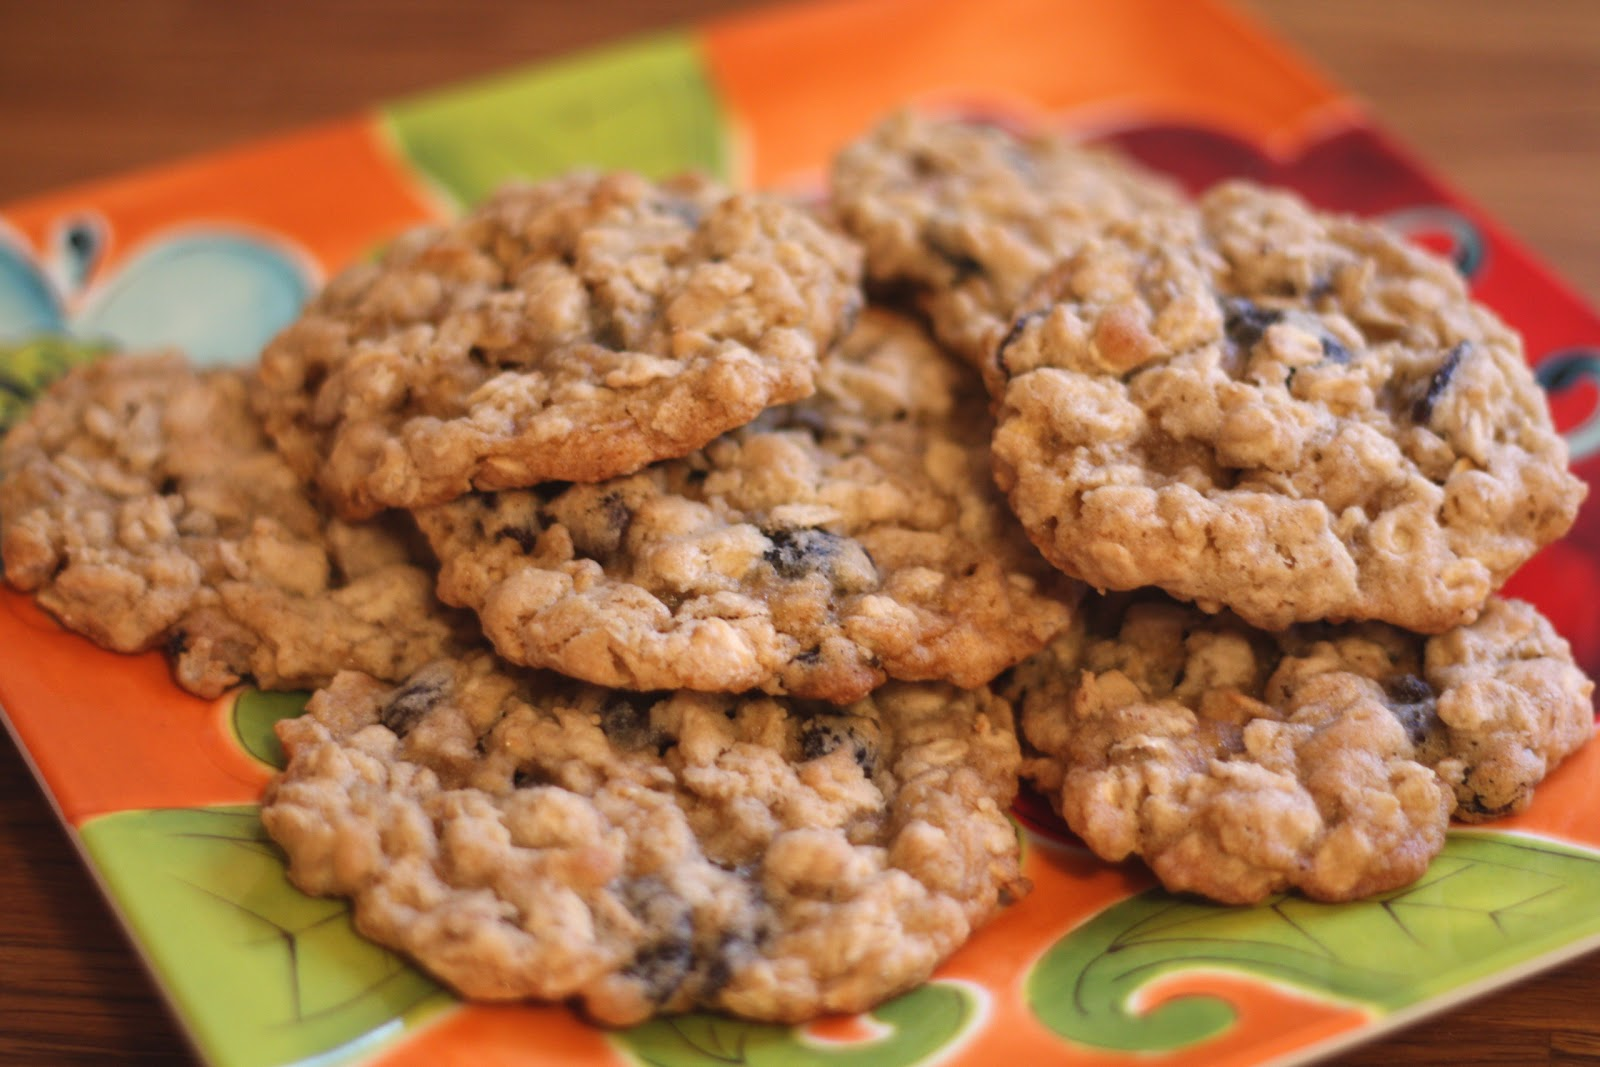 Barefeet In The Kitchen: Soft and Chewy Oatmeal Raisin Cookies